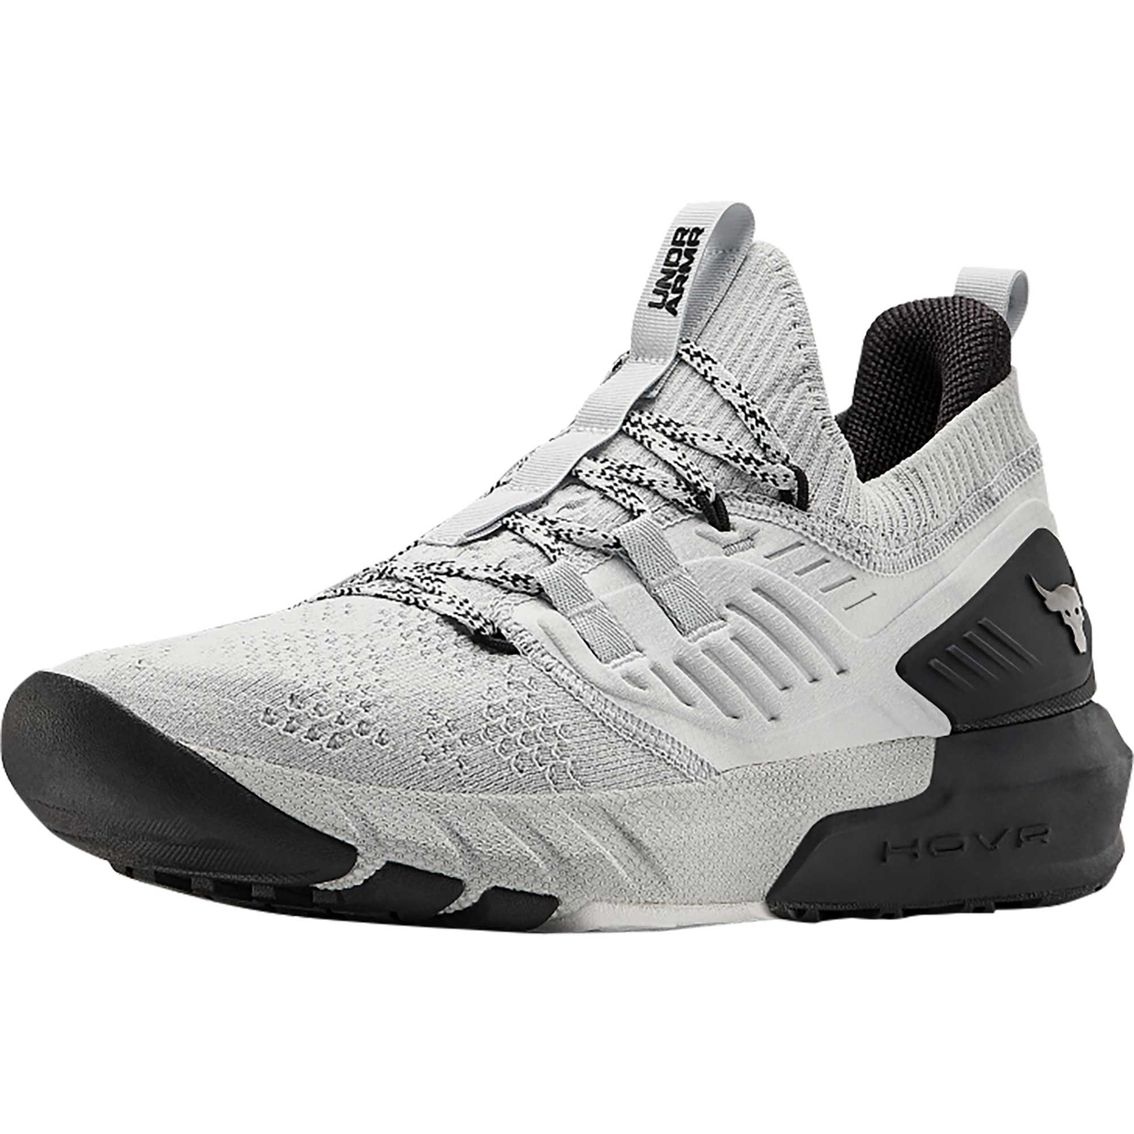 Under Armour Project Rock 3 Training